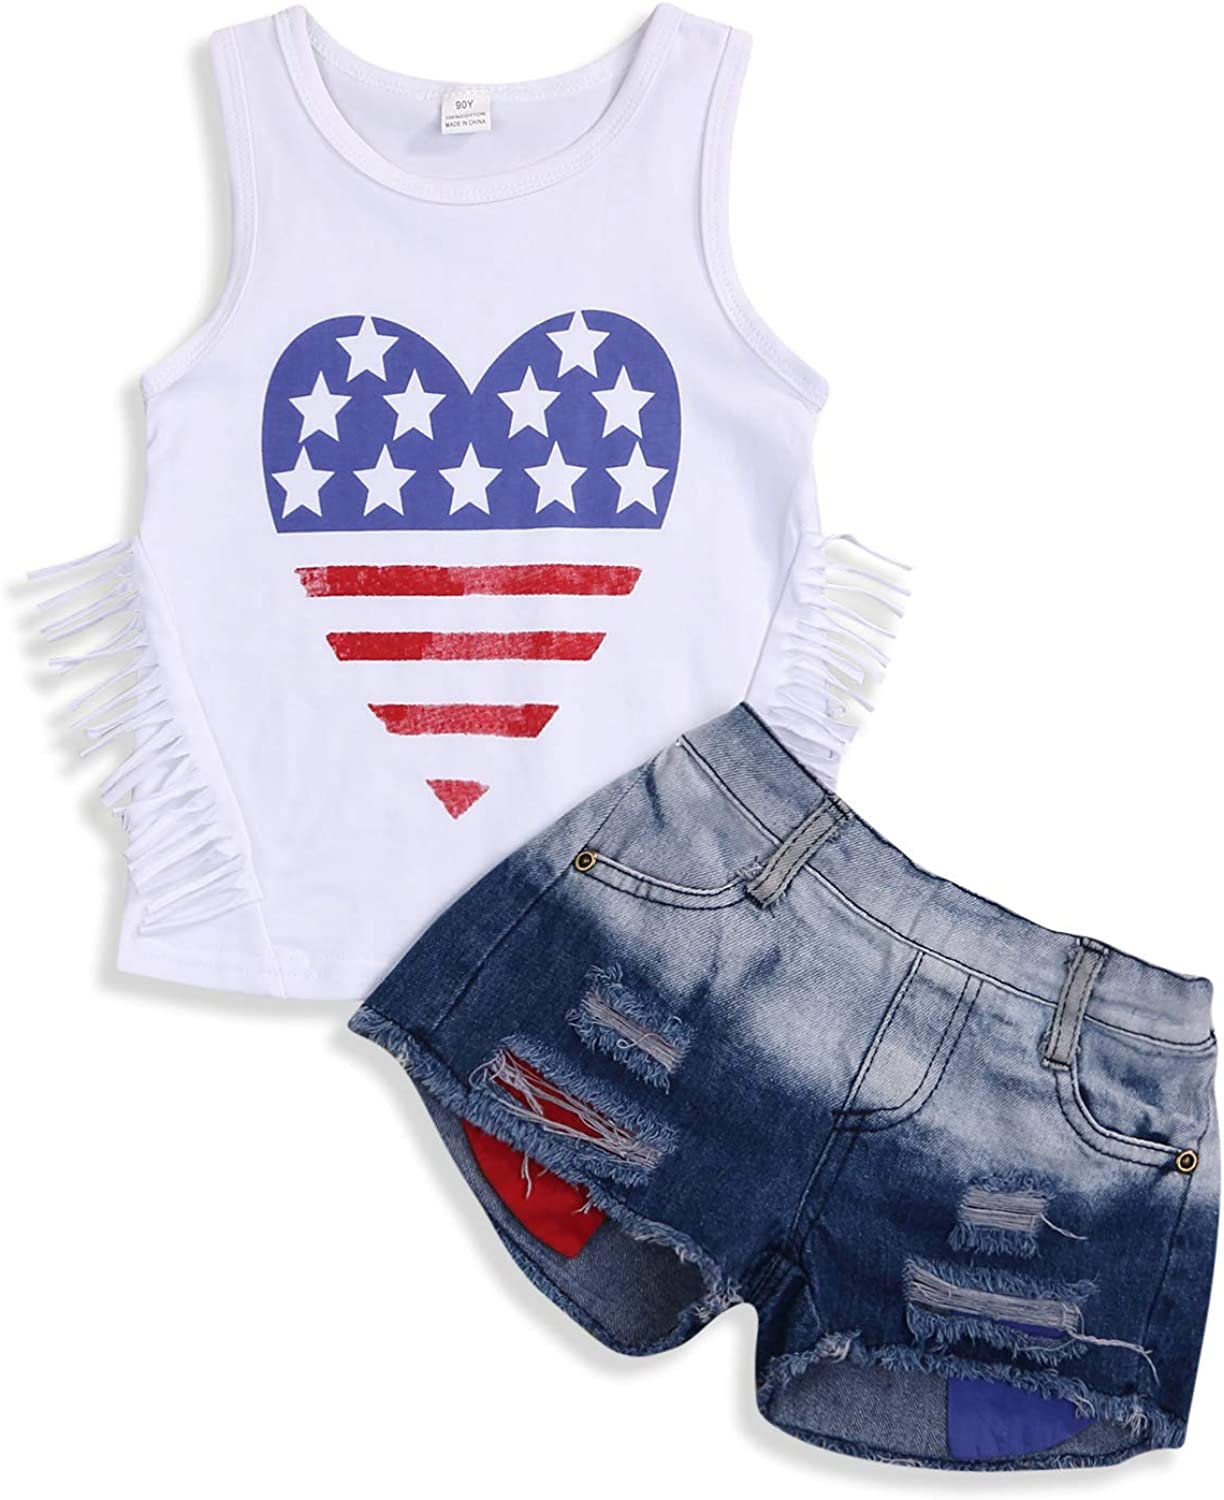 Infant Baby Girls Boys Outfit Red White and Blue Print Vest Top American Flag Shorts Clothes Set